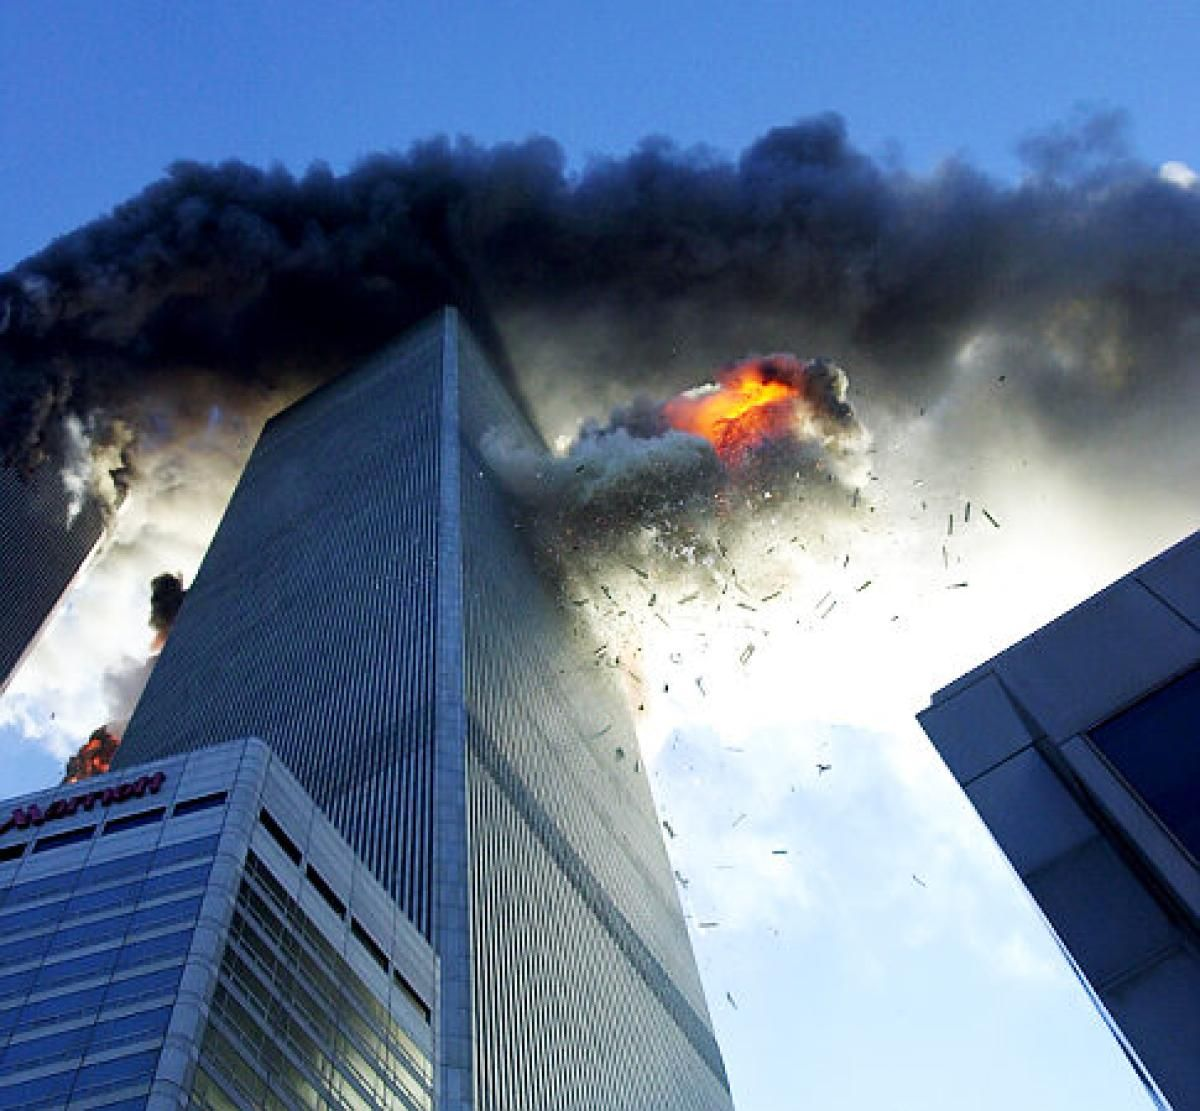 alg twin towers plane crash jpg jpg times pixels  alg twin towers plane crash jpg jpg 1 200times1 111 pixels 9 11